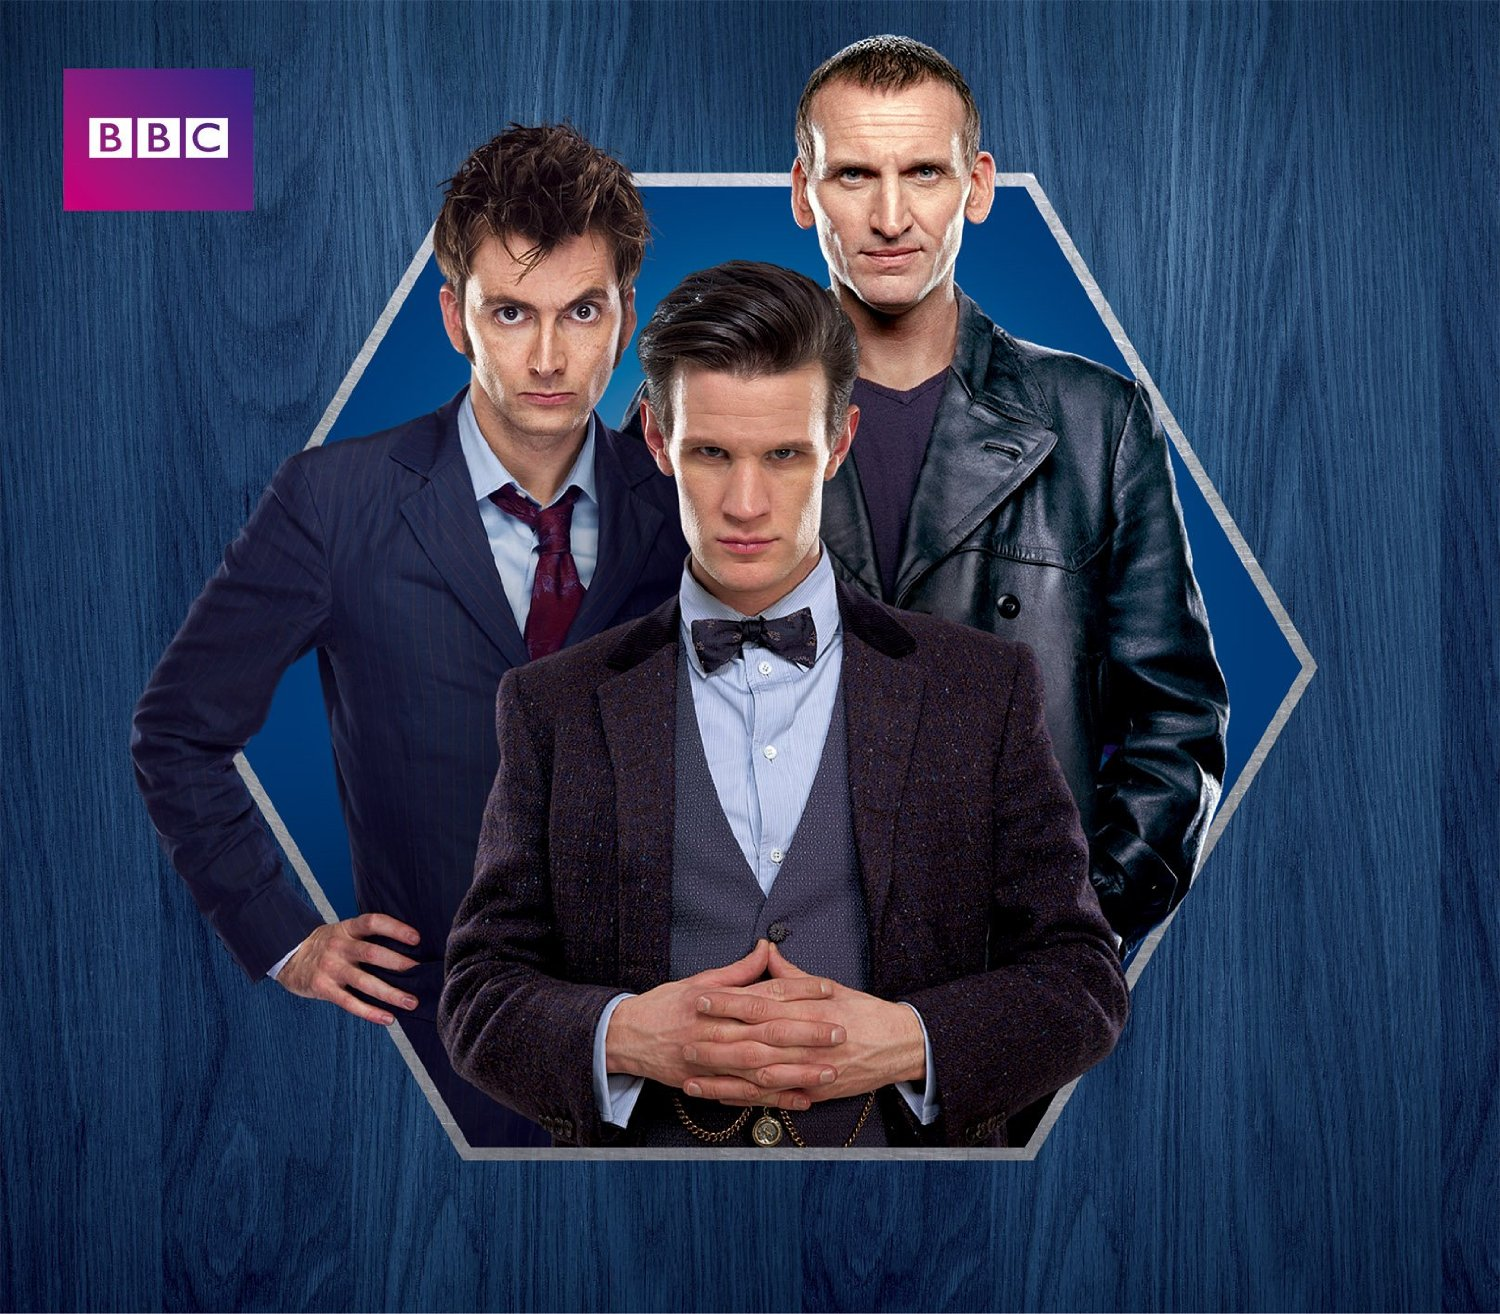 Doctor Who - Ecclestone, Tennant, Smith